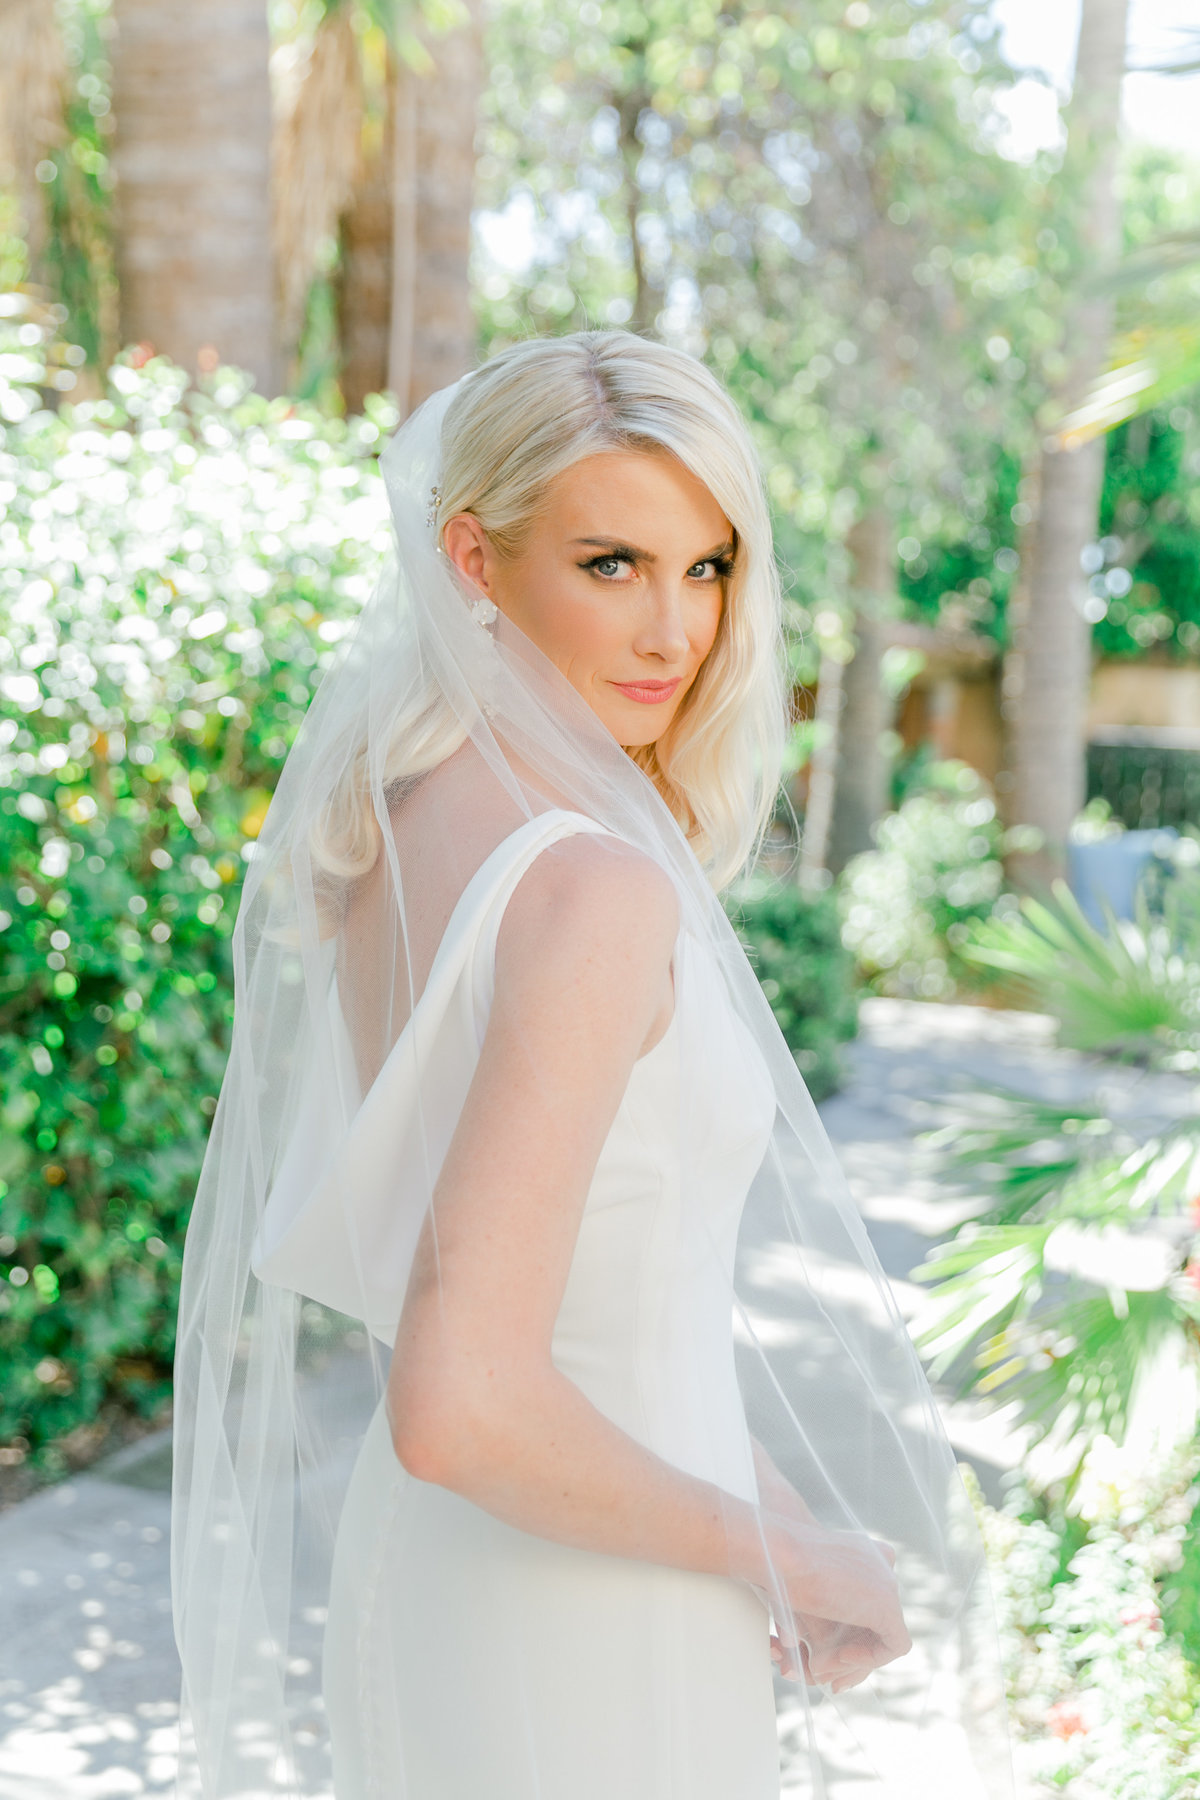 Karlie Colleen Photography - Arizona Wedding - Royal Palms Resort- Alex & Alex-51